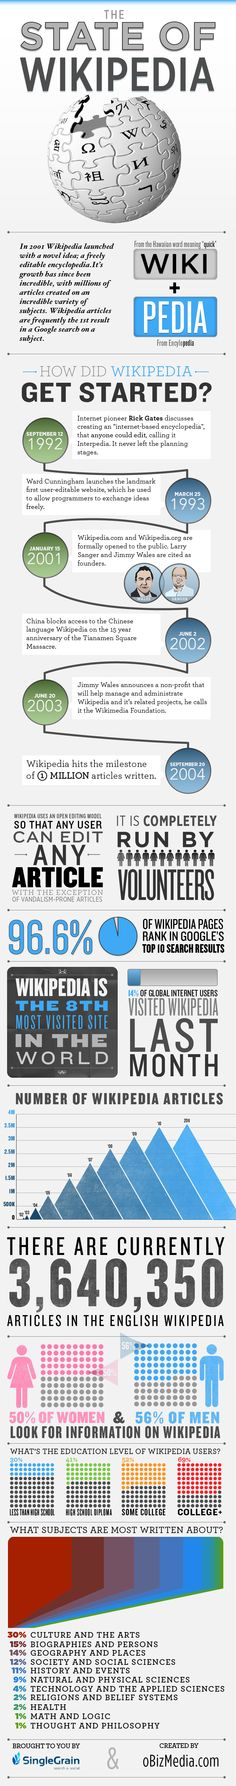 14 Best [Wk] Wiki images in 2015 | Infographic, Wiki page, Social Media